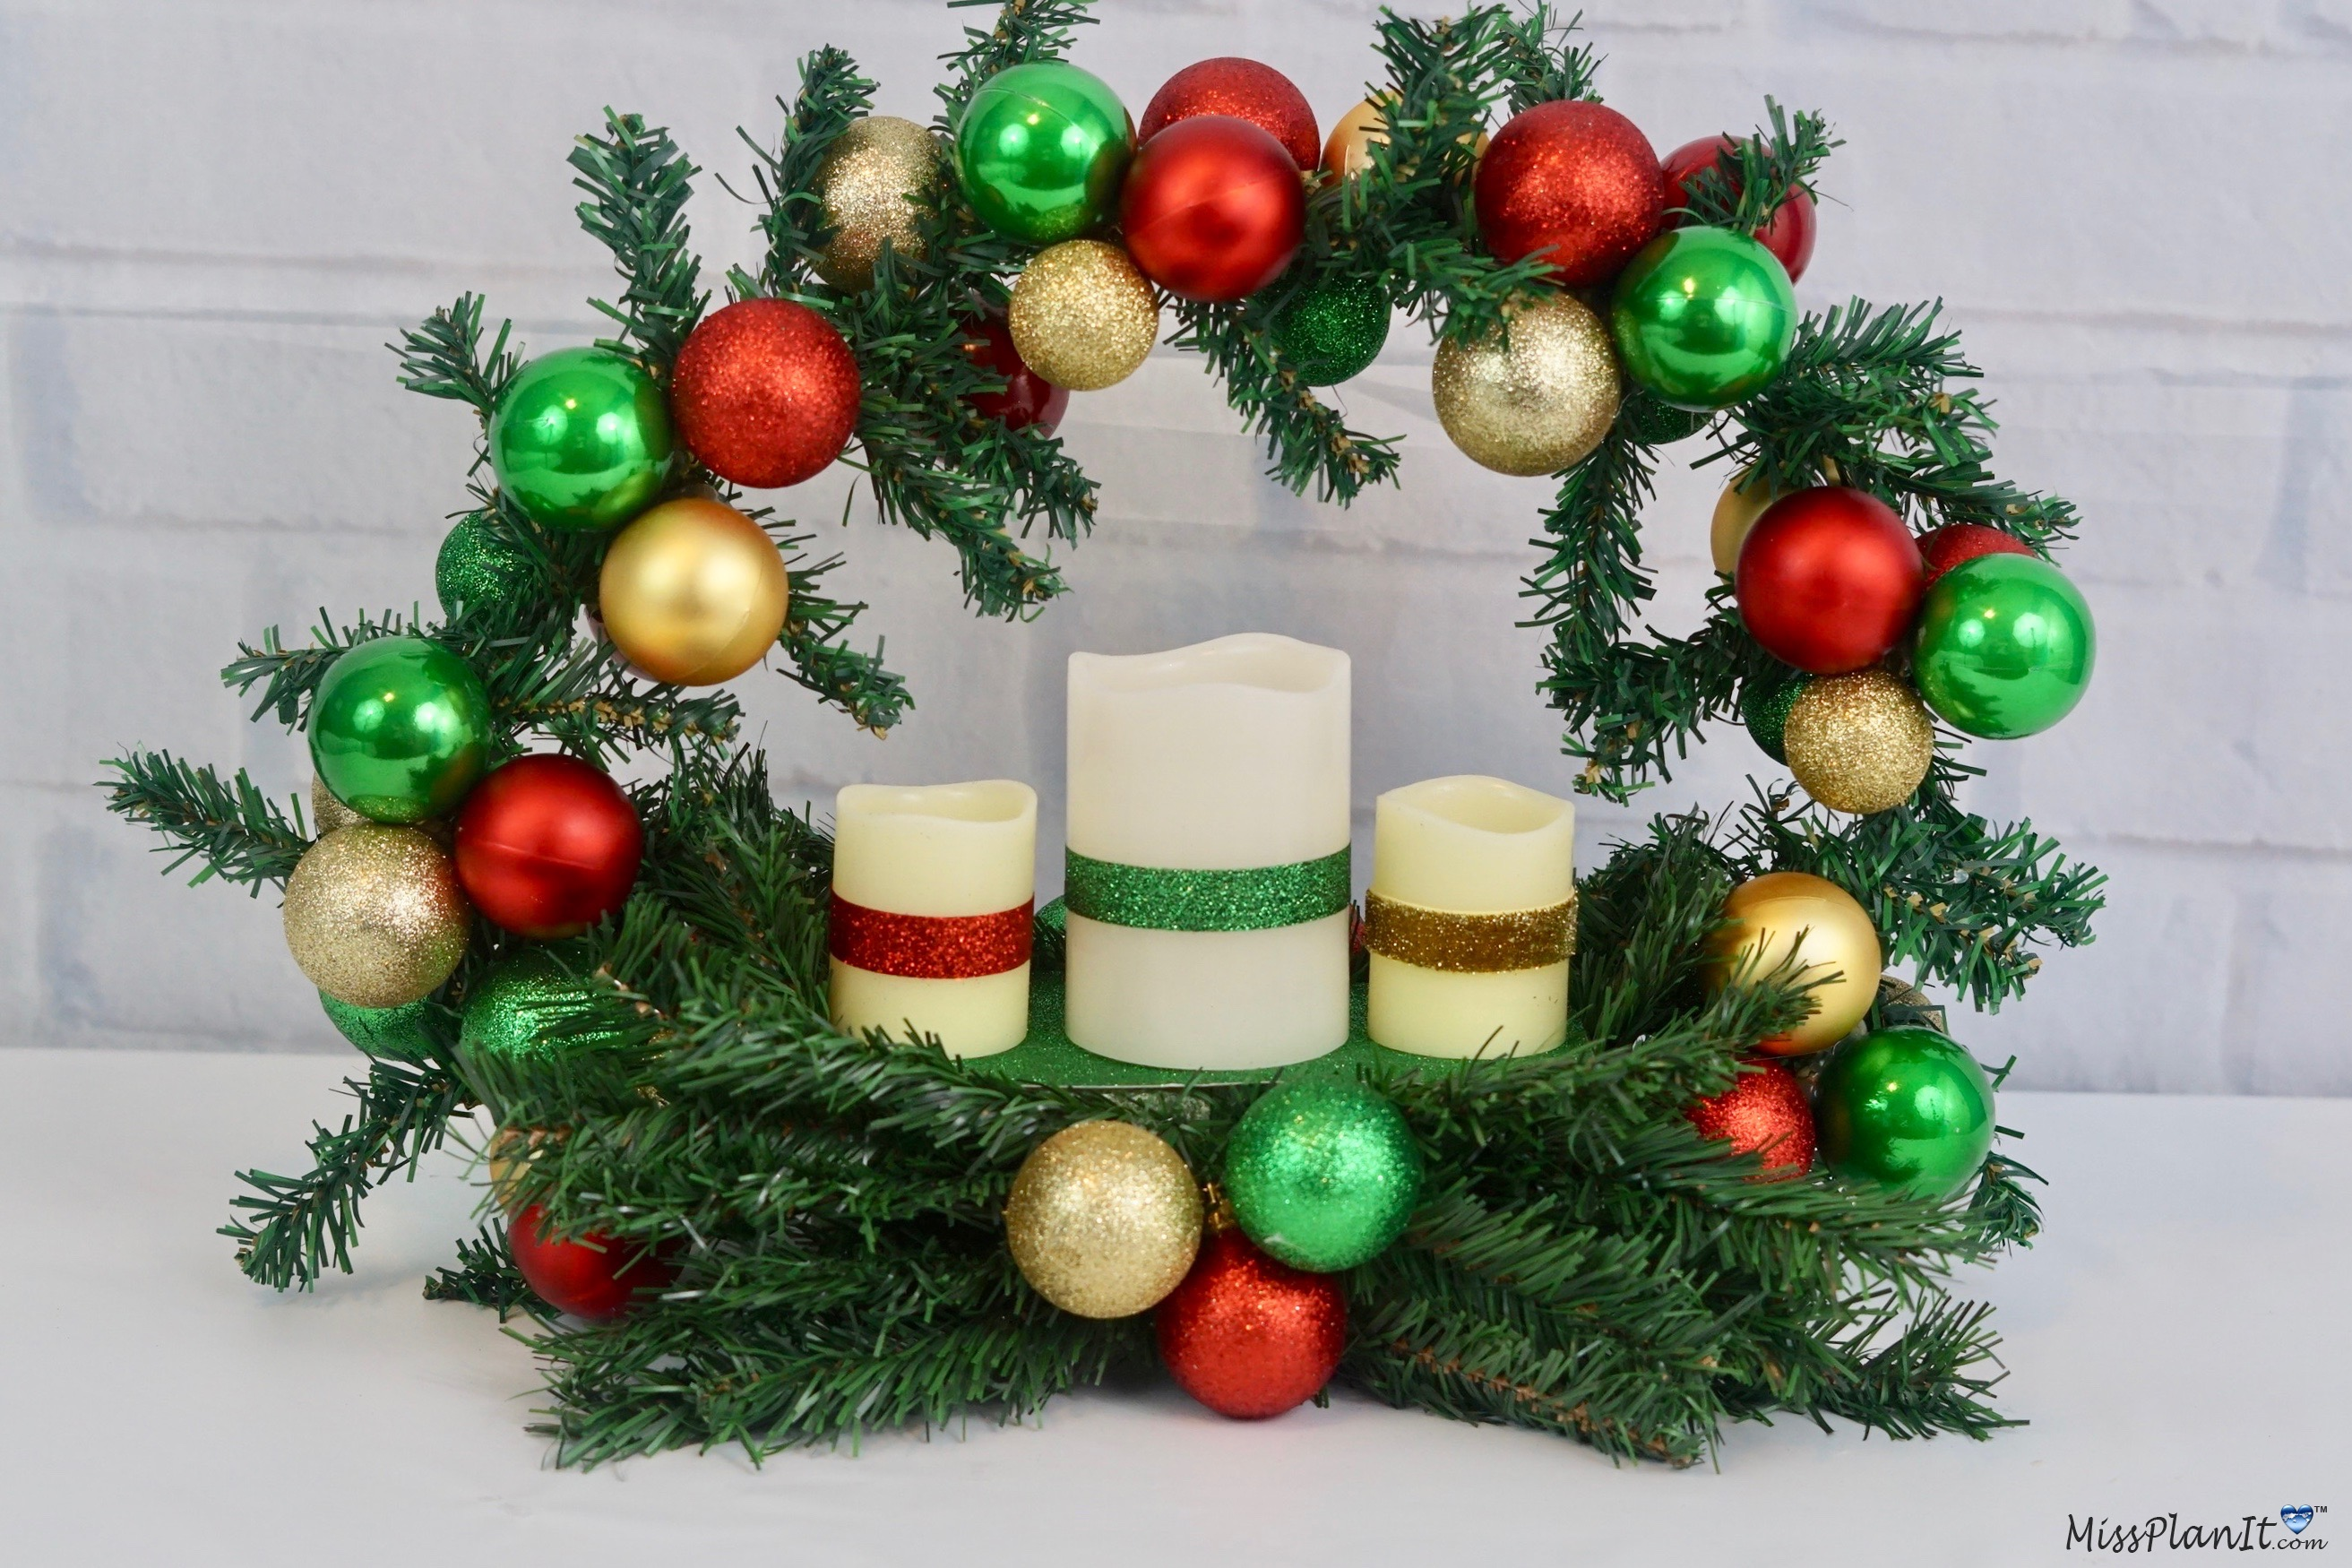 10 Dollar Tree Diy Christmas Wreath Centerpiece That Is Perfect For The Holidays